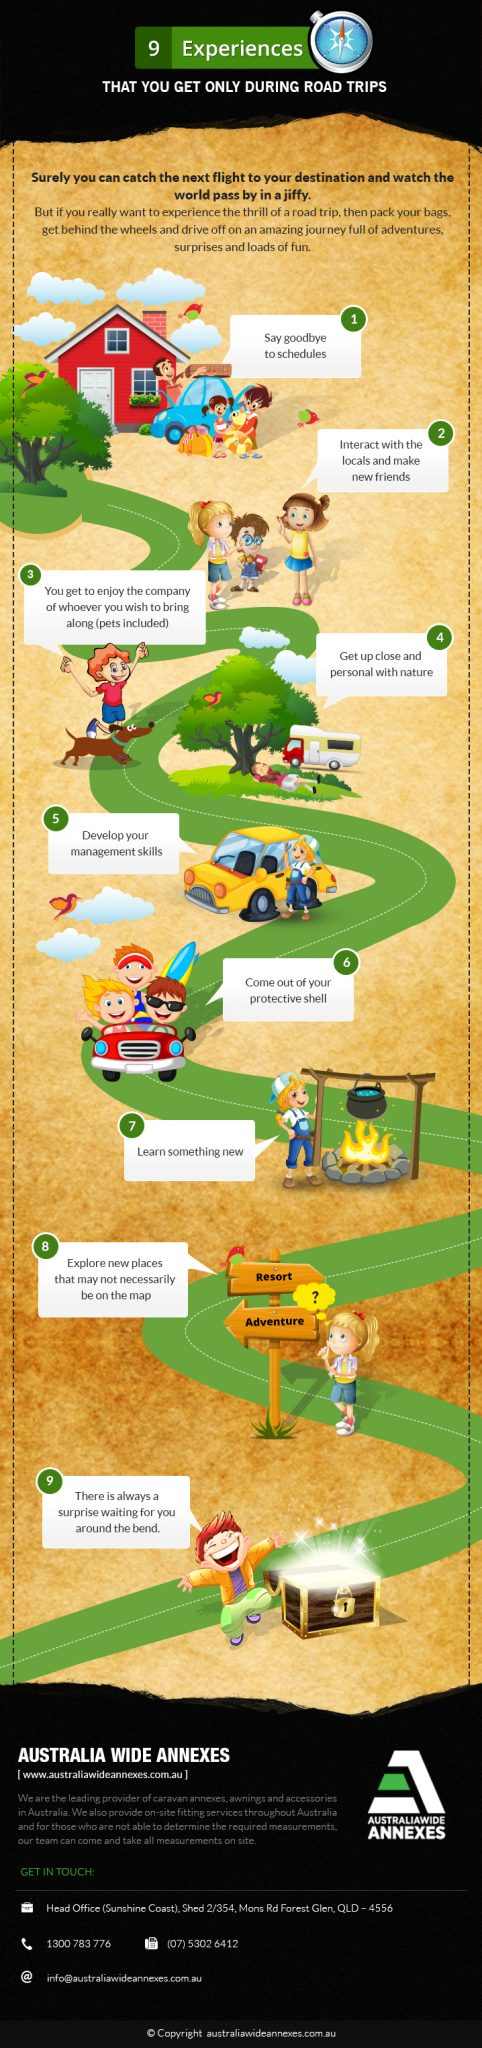 infographic 9 Experiences During Road Trips